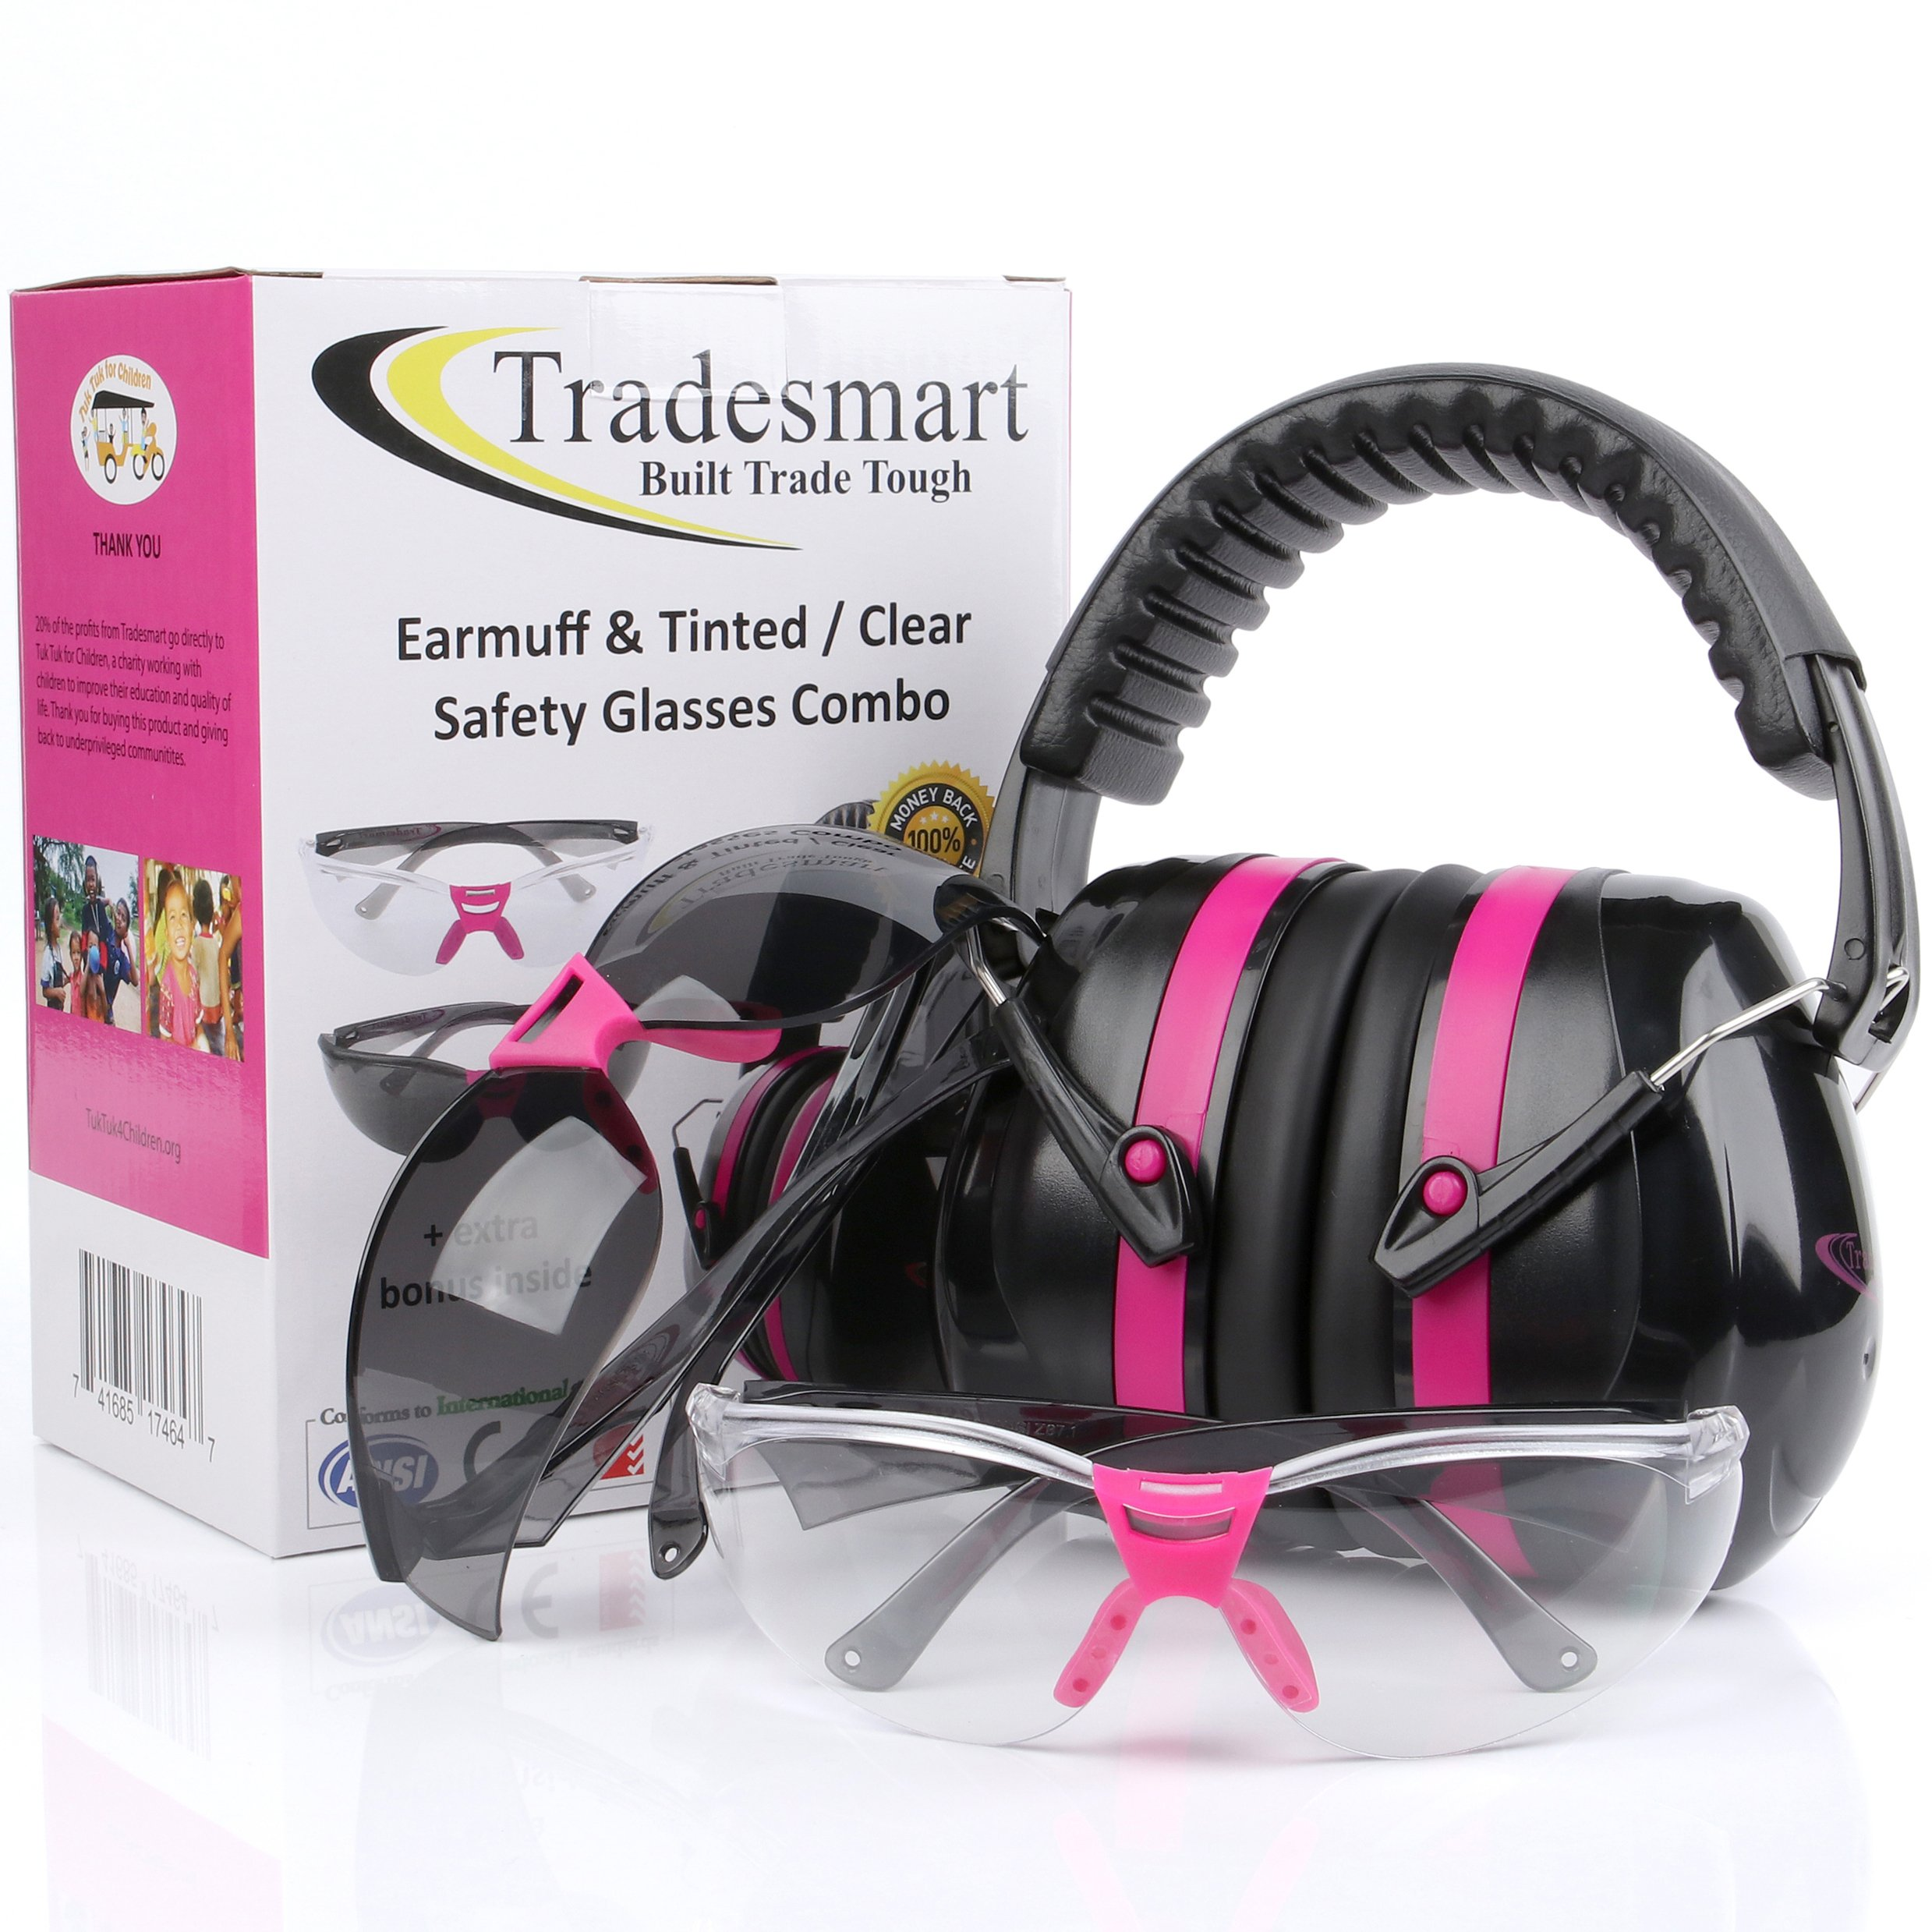 TRADESMART Pink Ear Muffs & Clear/Tinted Gun Safety Glasses - UV400 Anti Fog & Anti Scratch with Microfiber Pouch | Gun Range Ear Protection & Eye Protection for Shooting by TRADESMART BUILT TRADE TOUGH